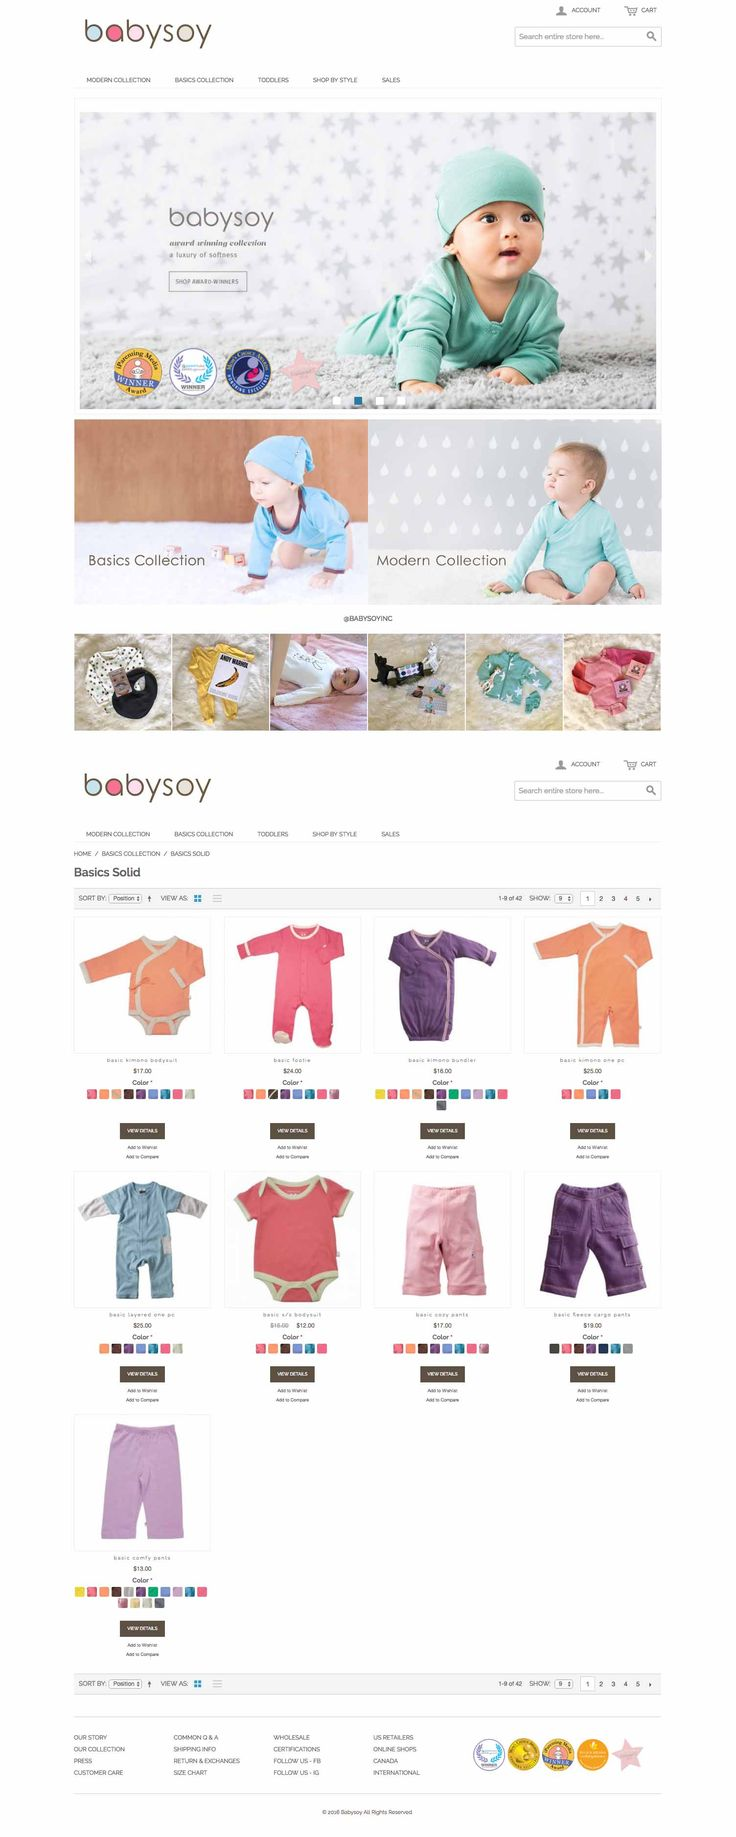 Babysoy is an online retailer of baby clothing,using simple and fresh designs. They create a sustainable and modern baby capsule wardrobe for eco-babies without sacrificing comfort or style. #oodda #babysoy #website #design #babysuit #maintenance #marketing